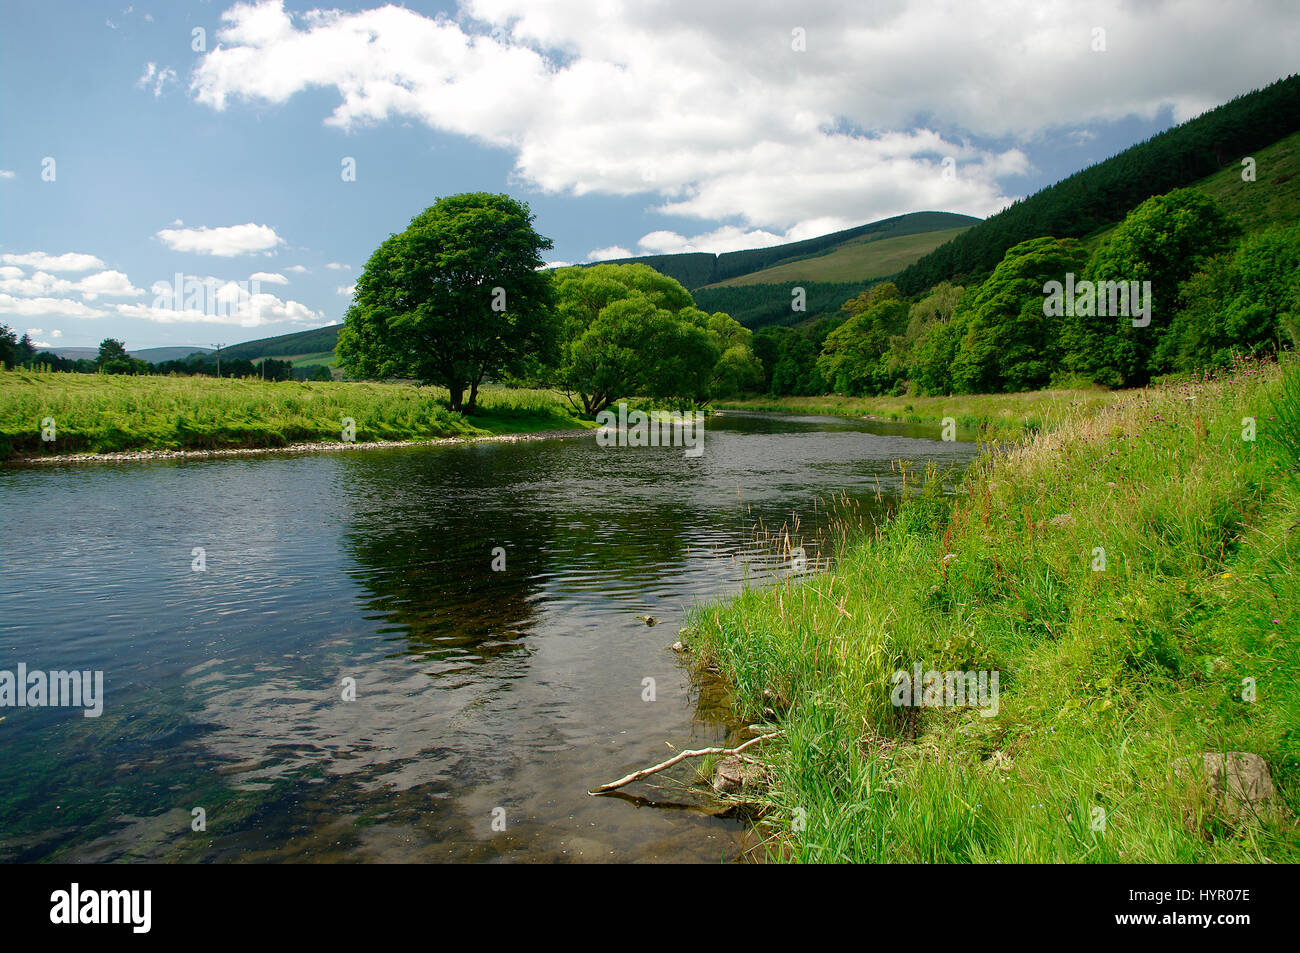 River Tweed at Selkirk, Scotland - Stock Image